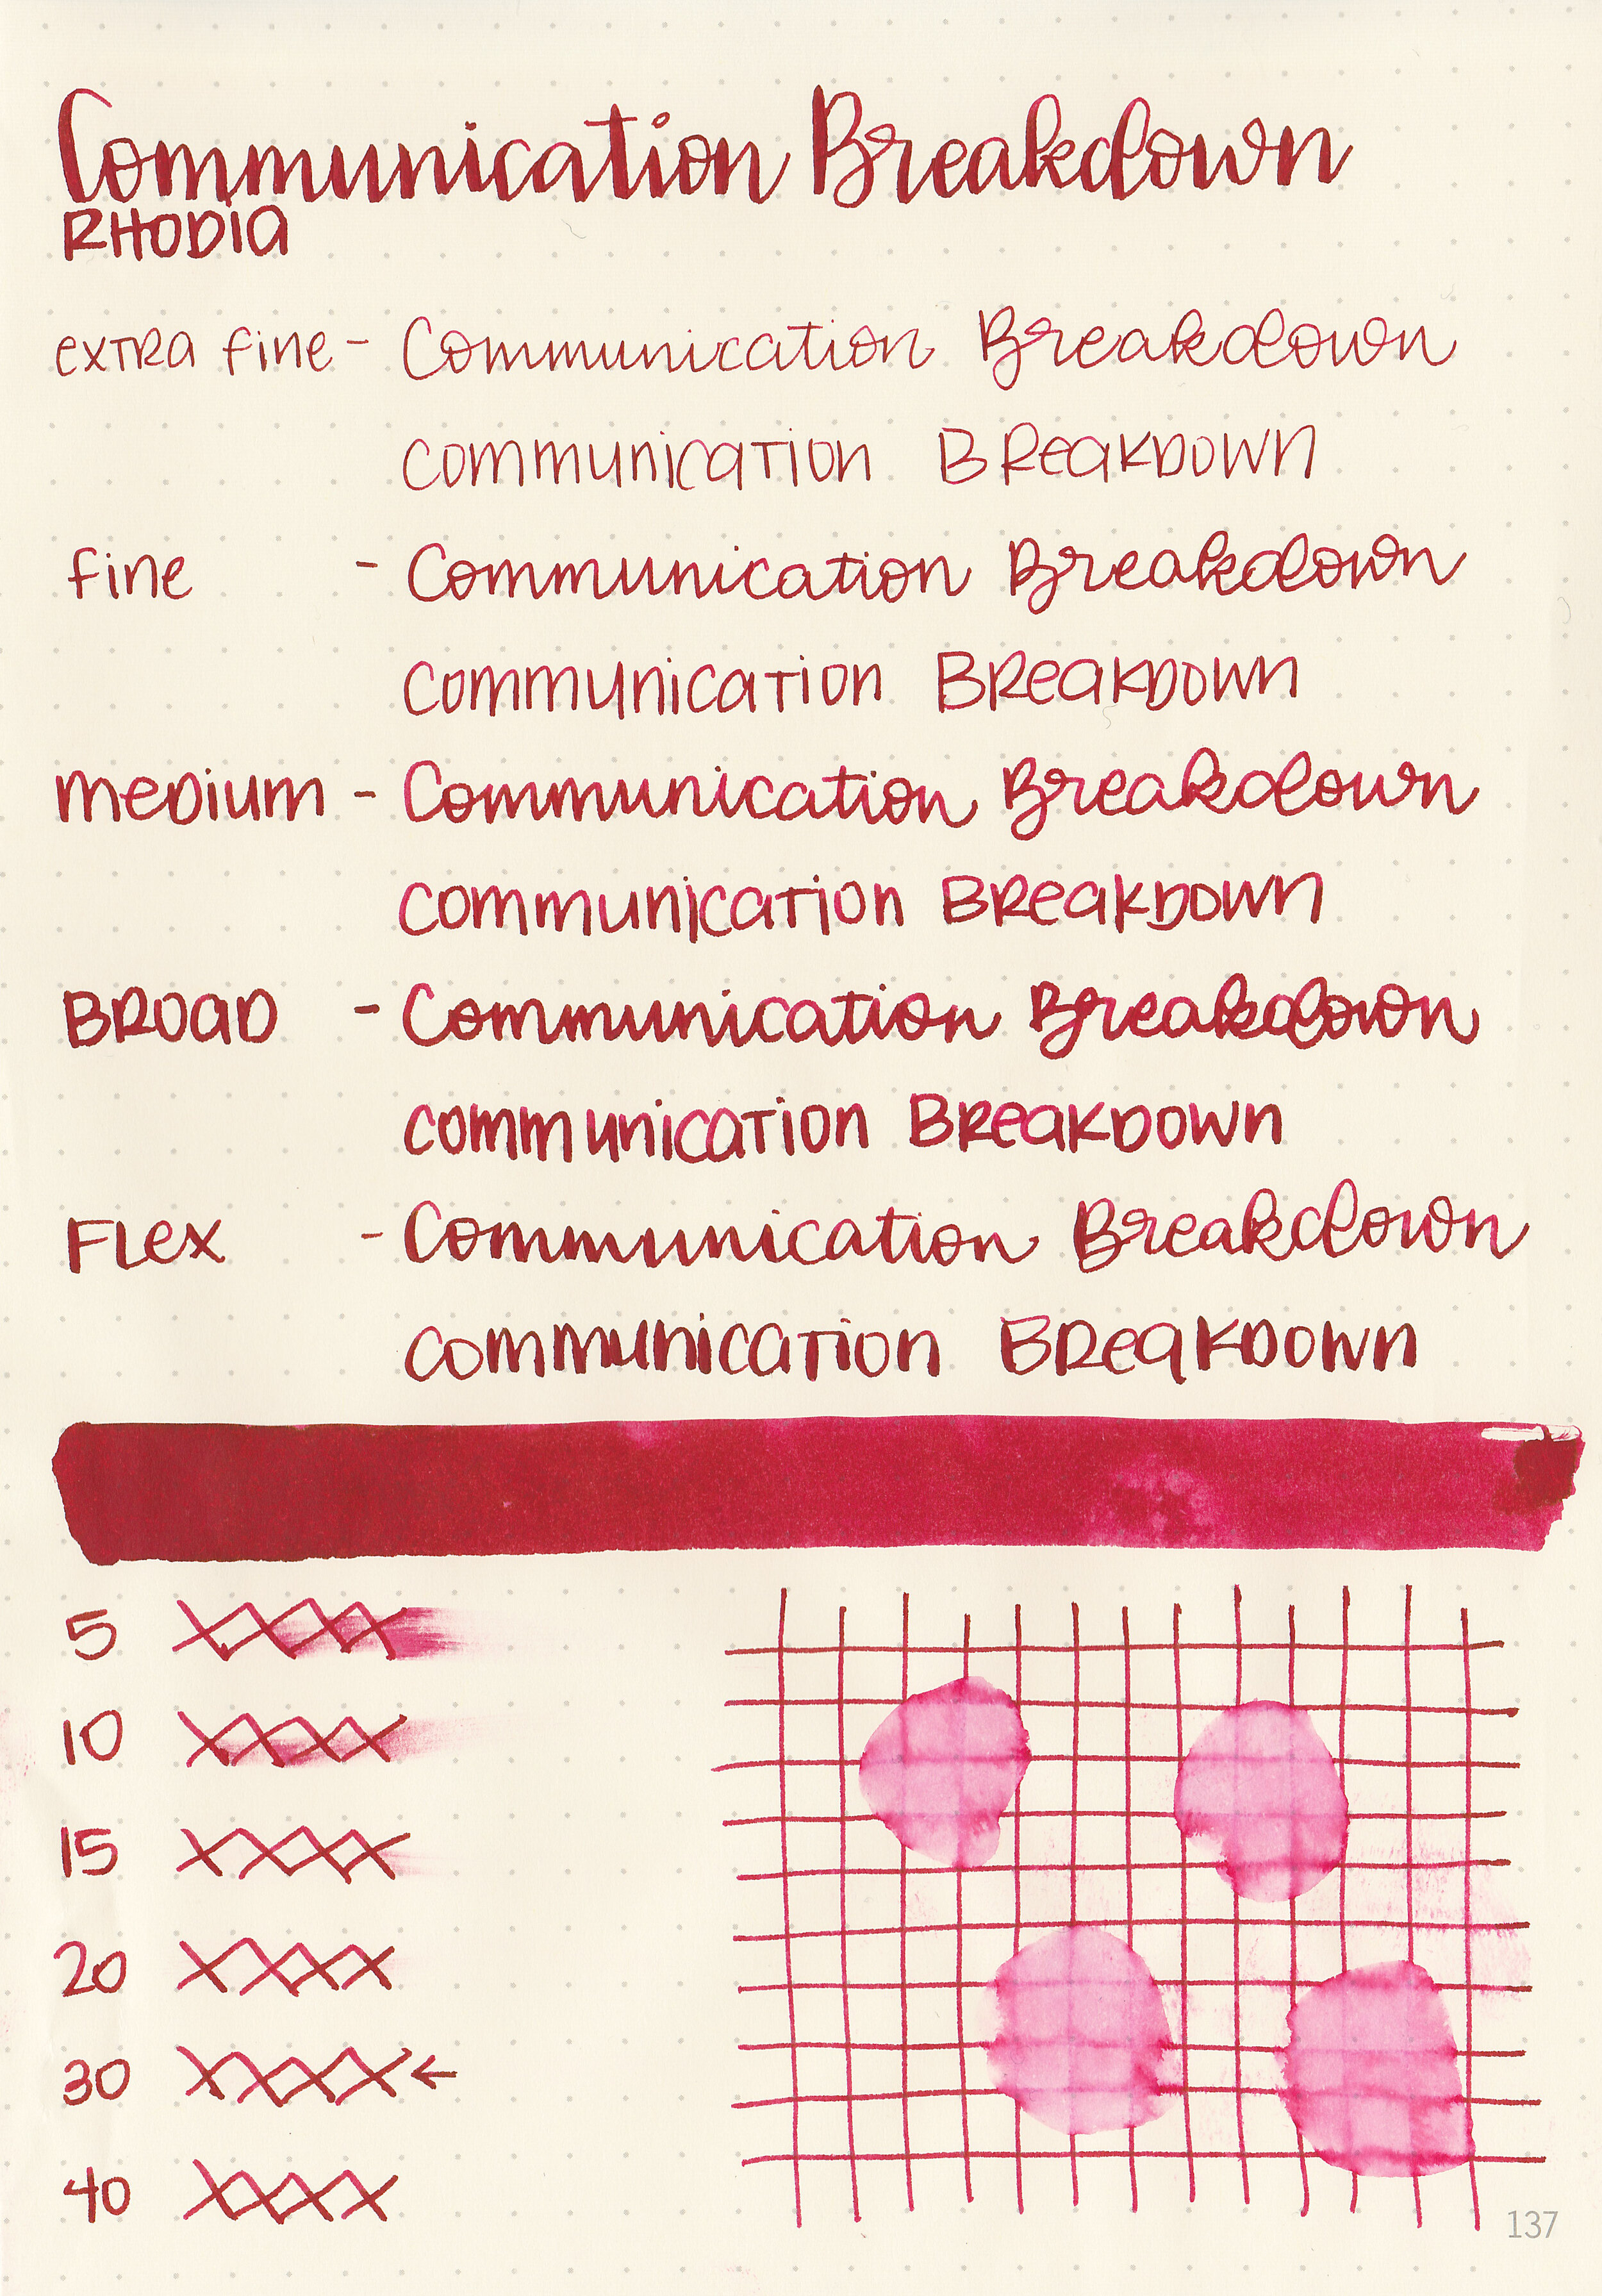 d-communication-breakdown-3.jpg